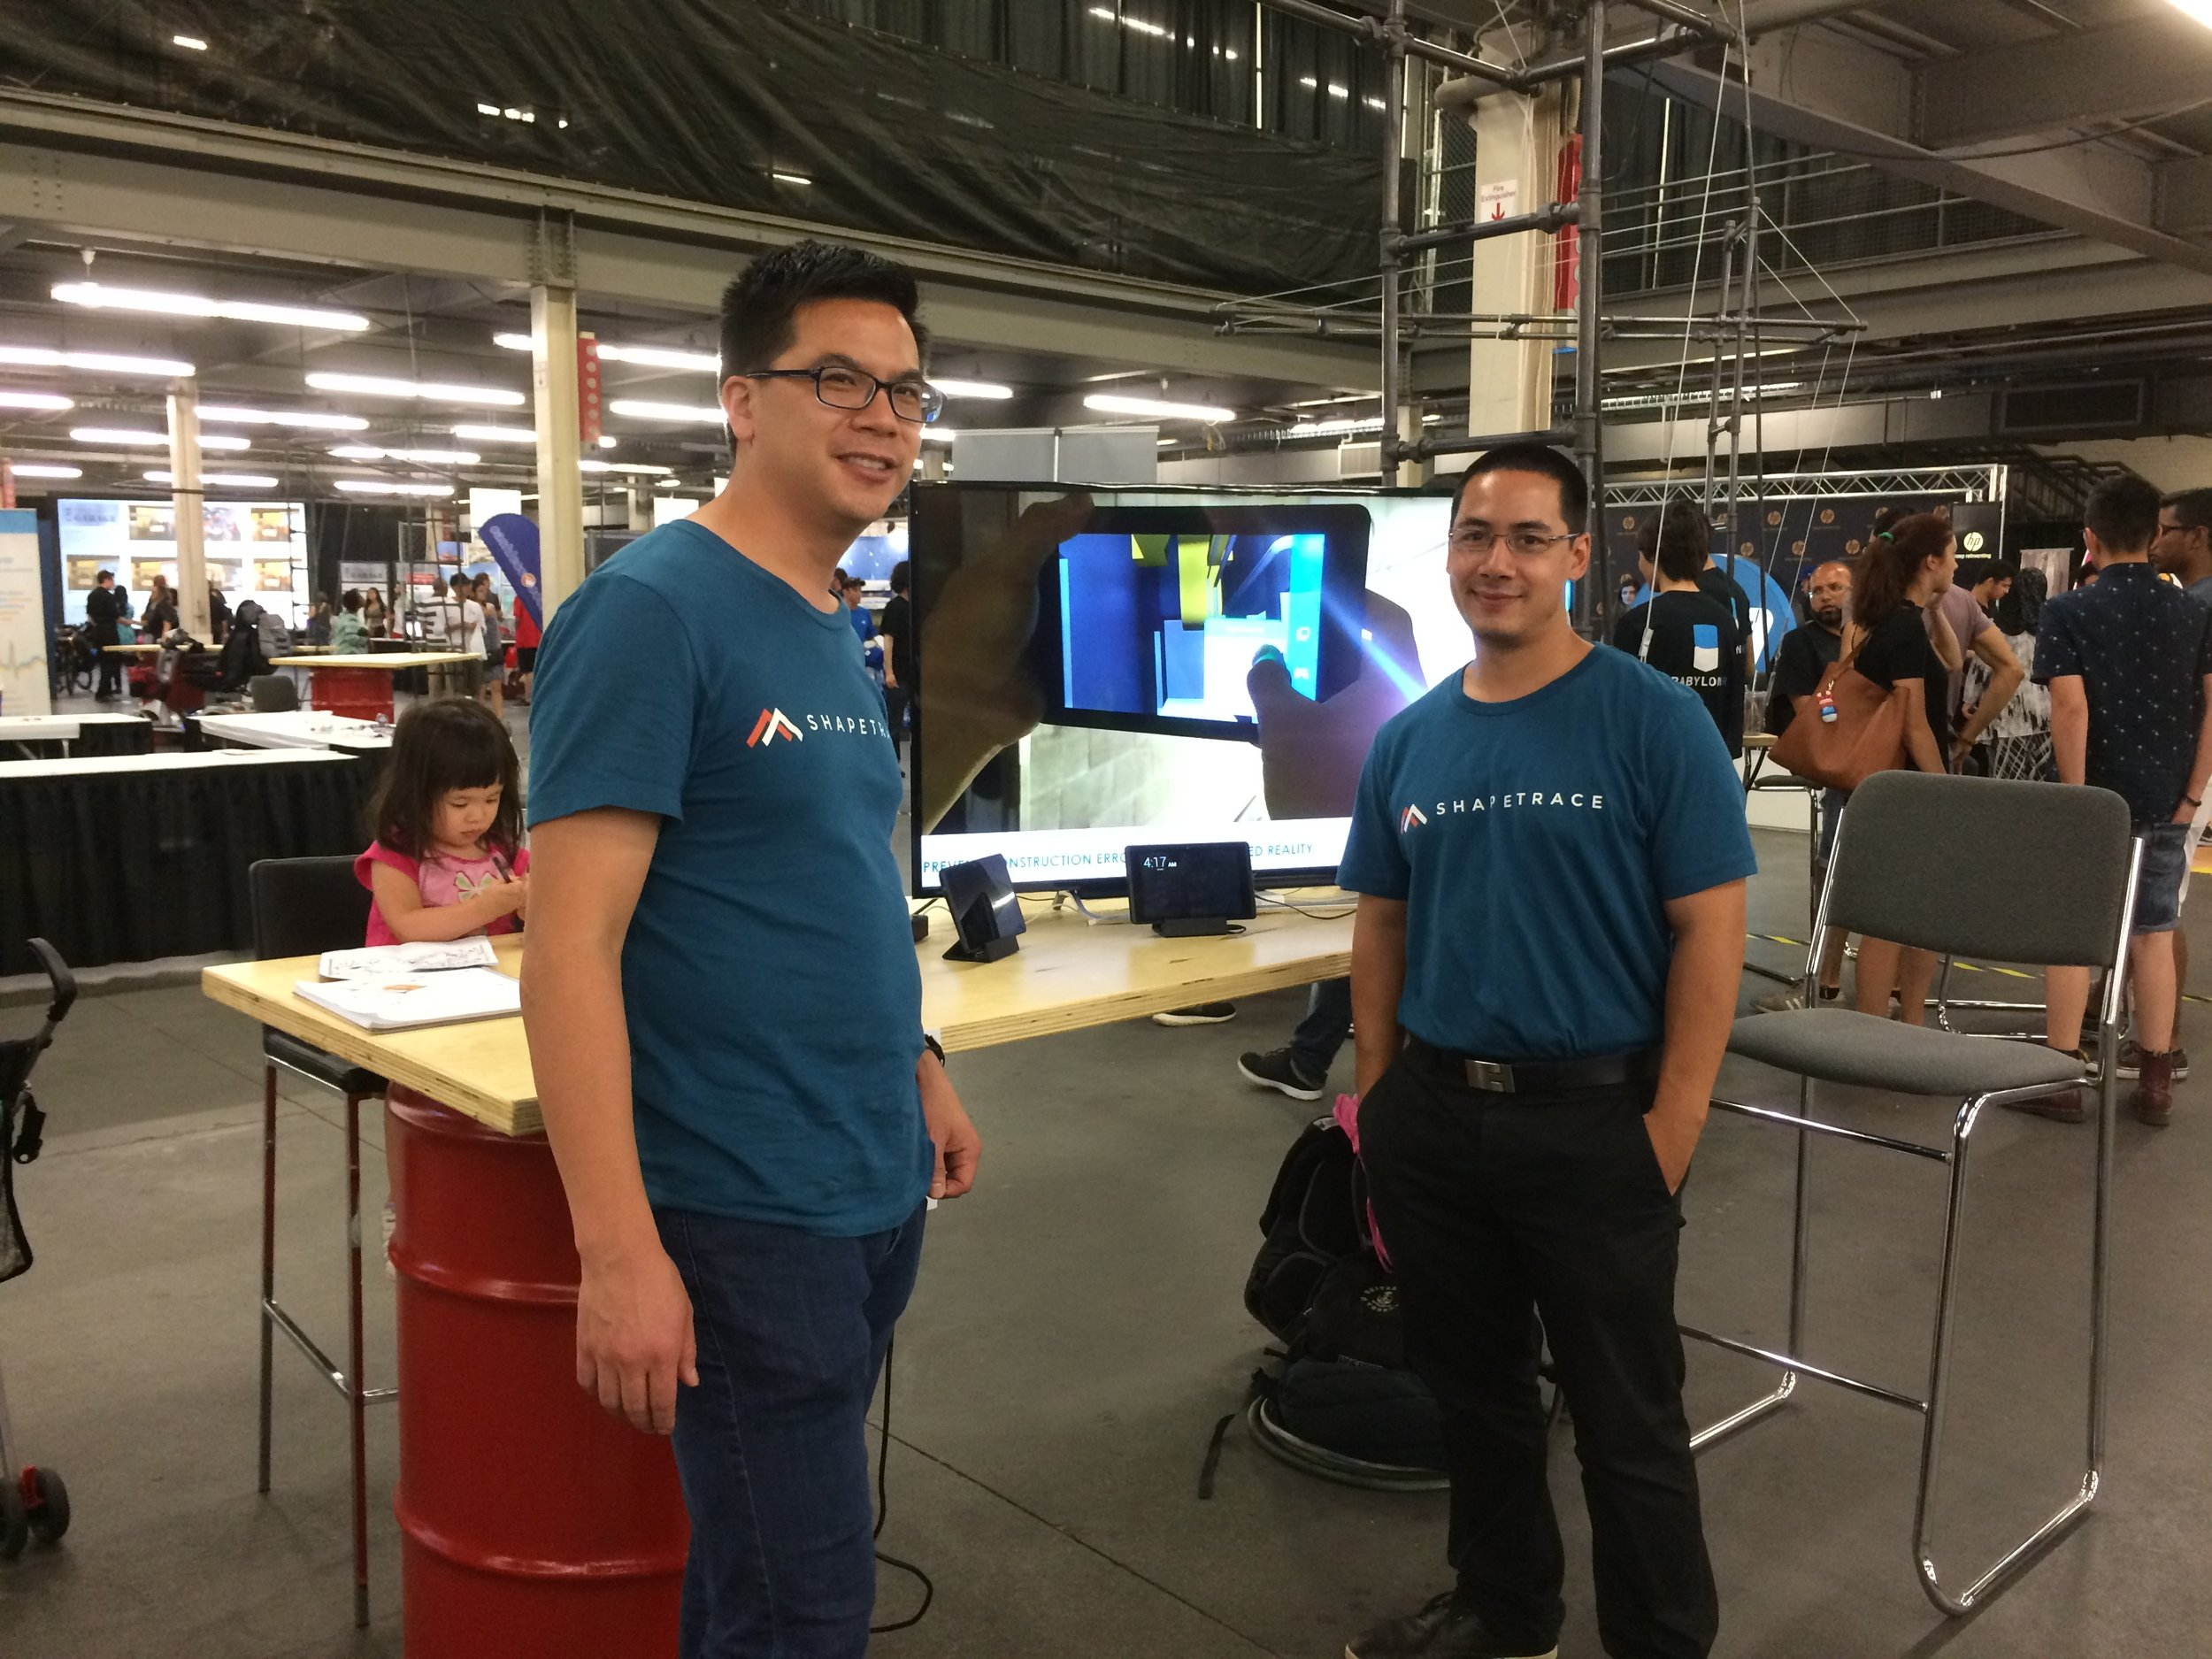 Image 2: Co-founders Ernest and Julien at the Shapetrace booth.